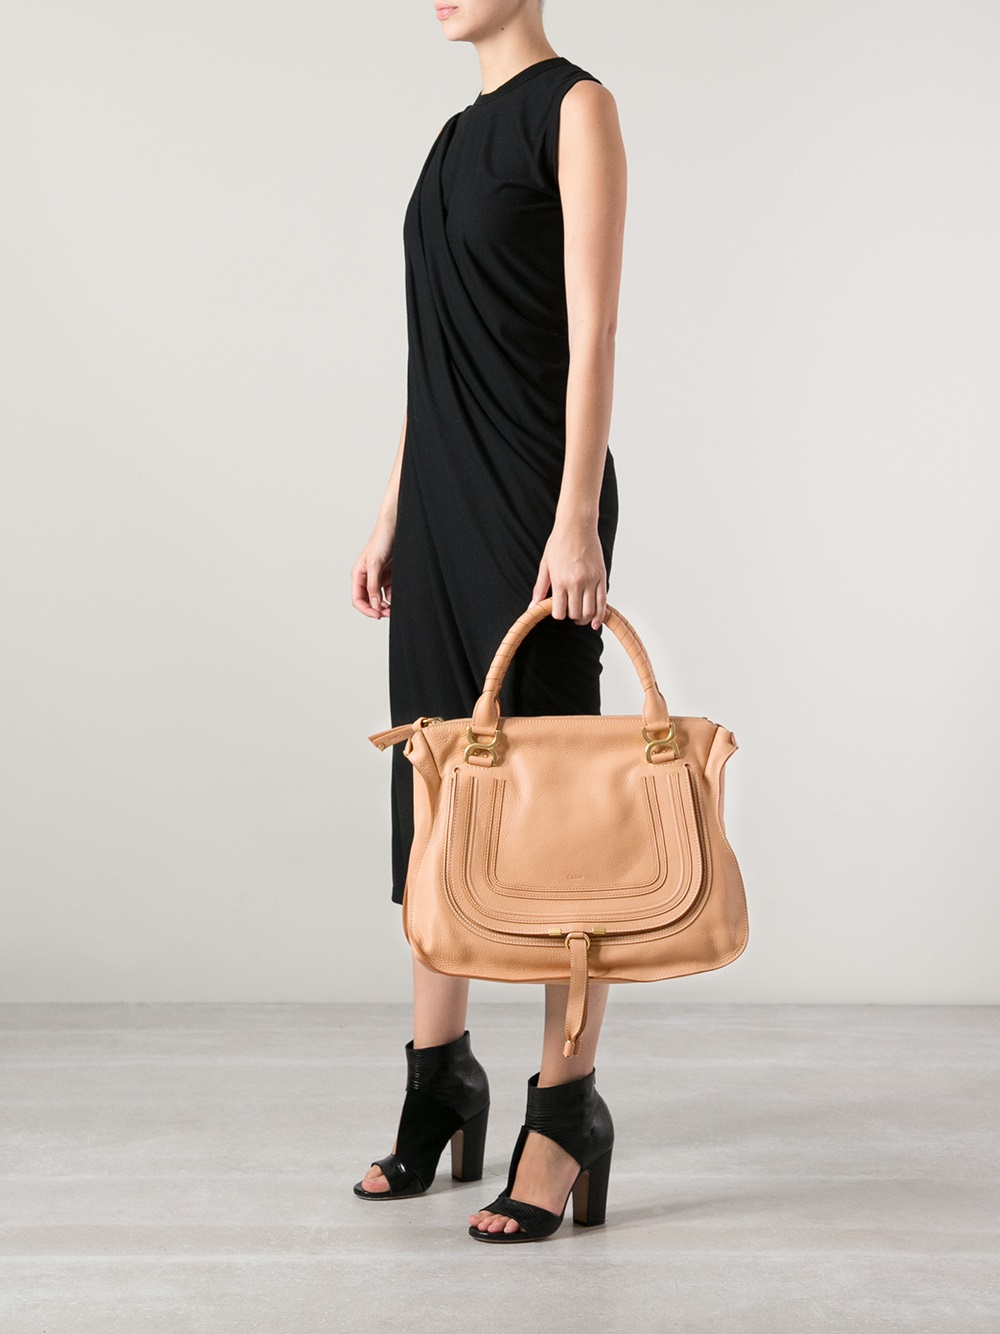 Chloé Marcie Tote in Natural